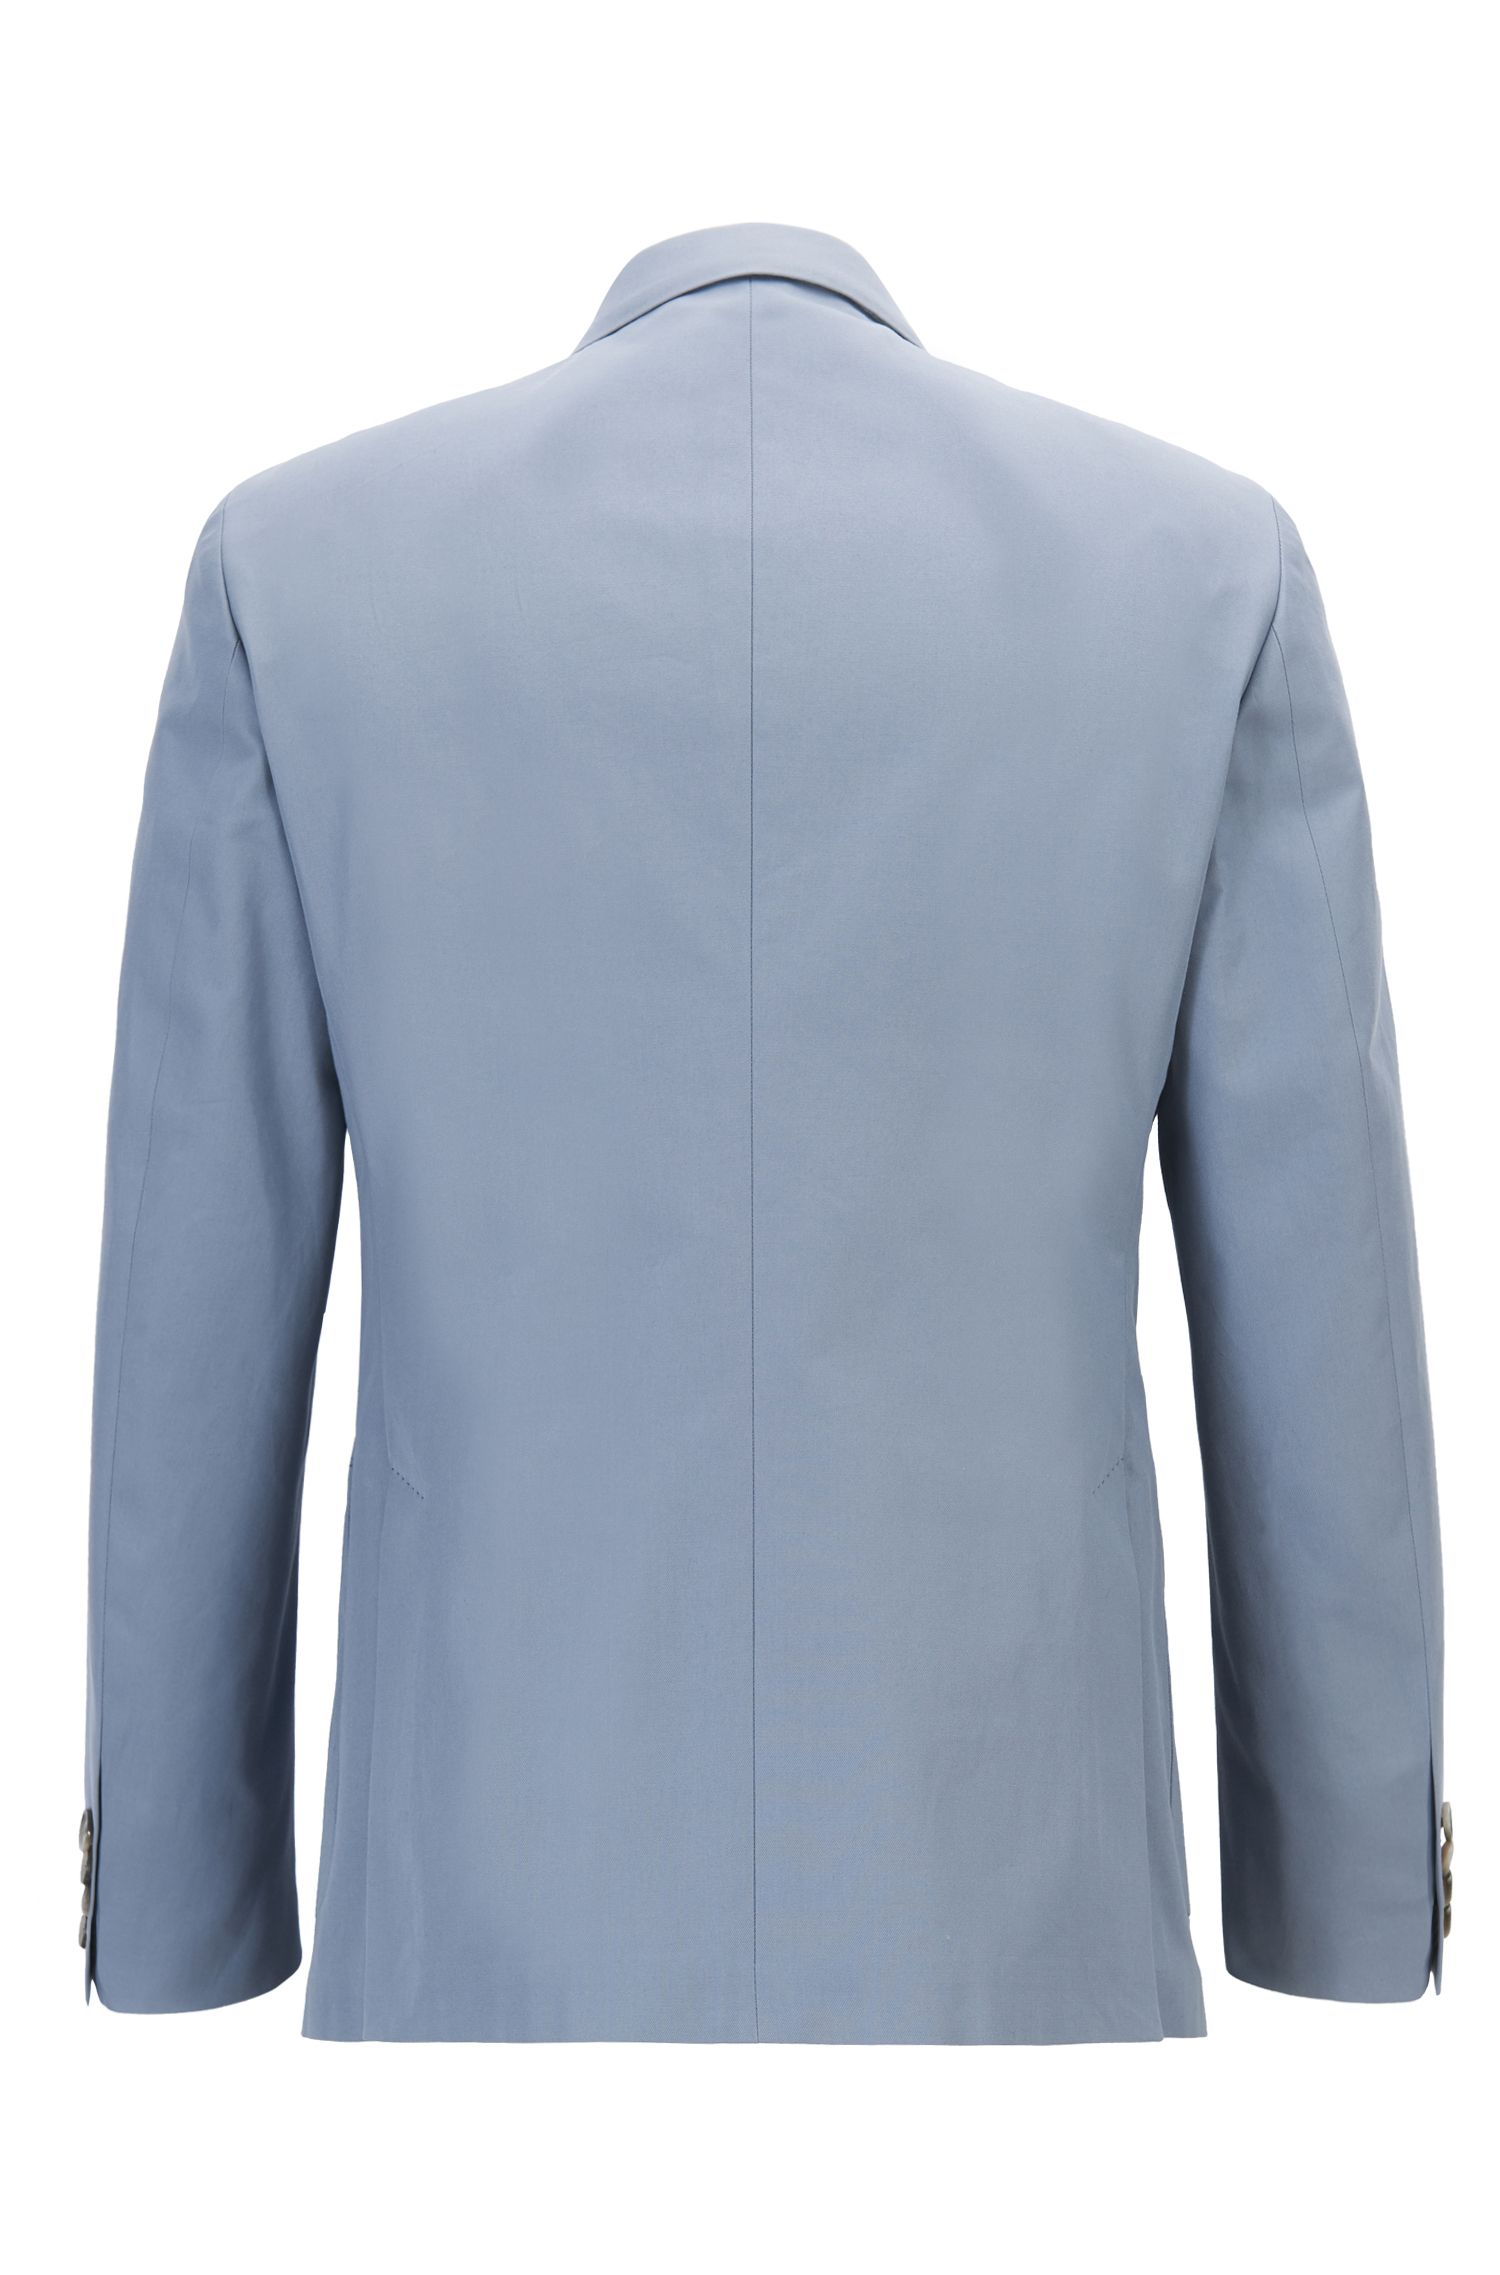 Pure Cotton Double-Breasted Jacket, Slim Fit | North, Open Grey